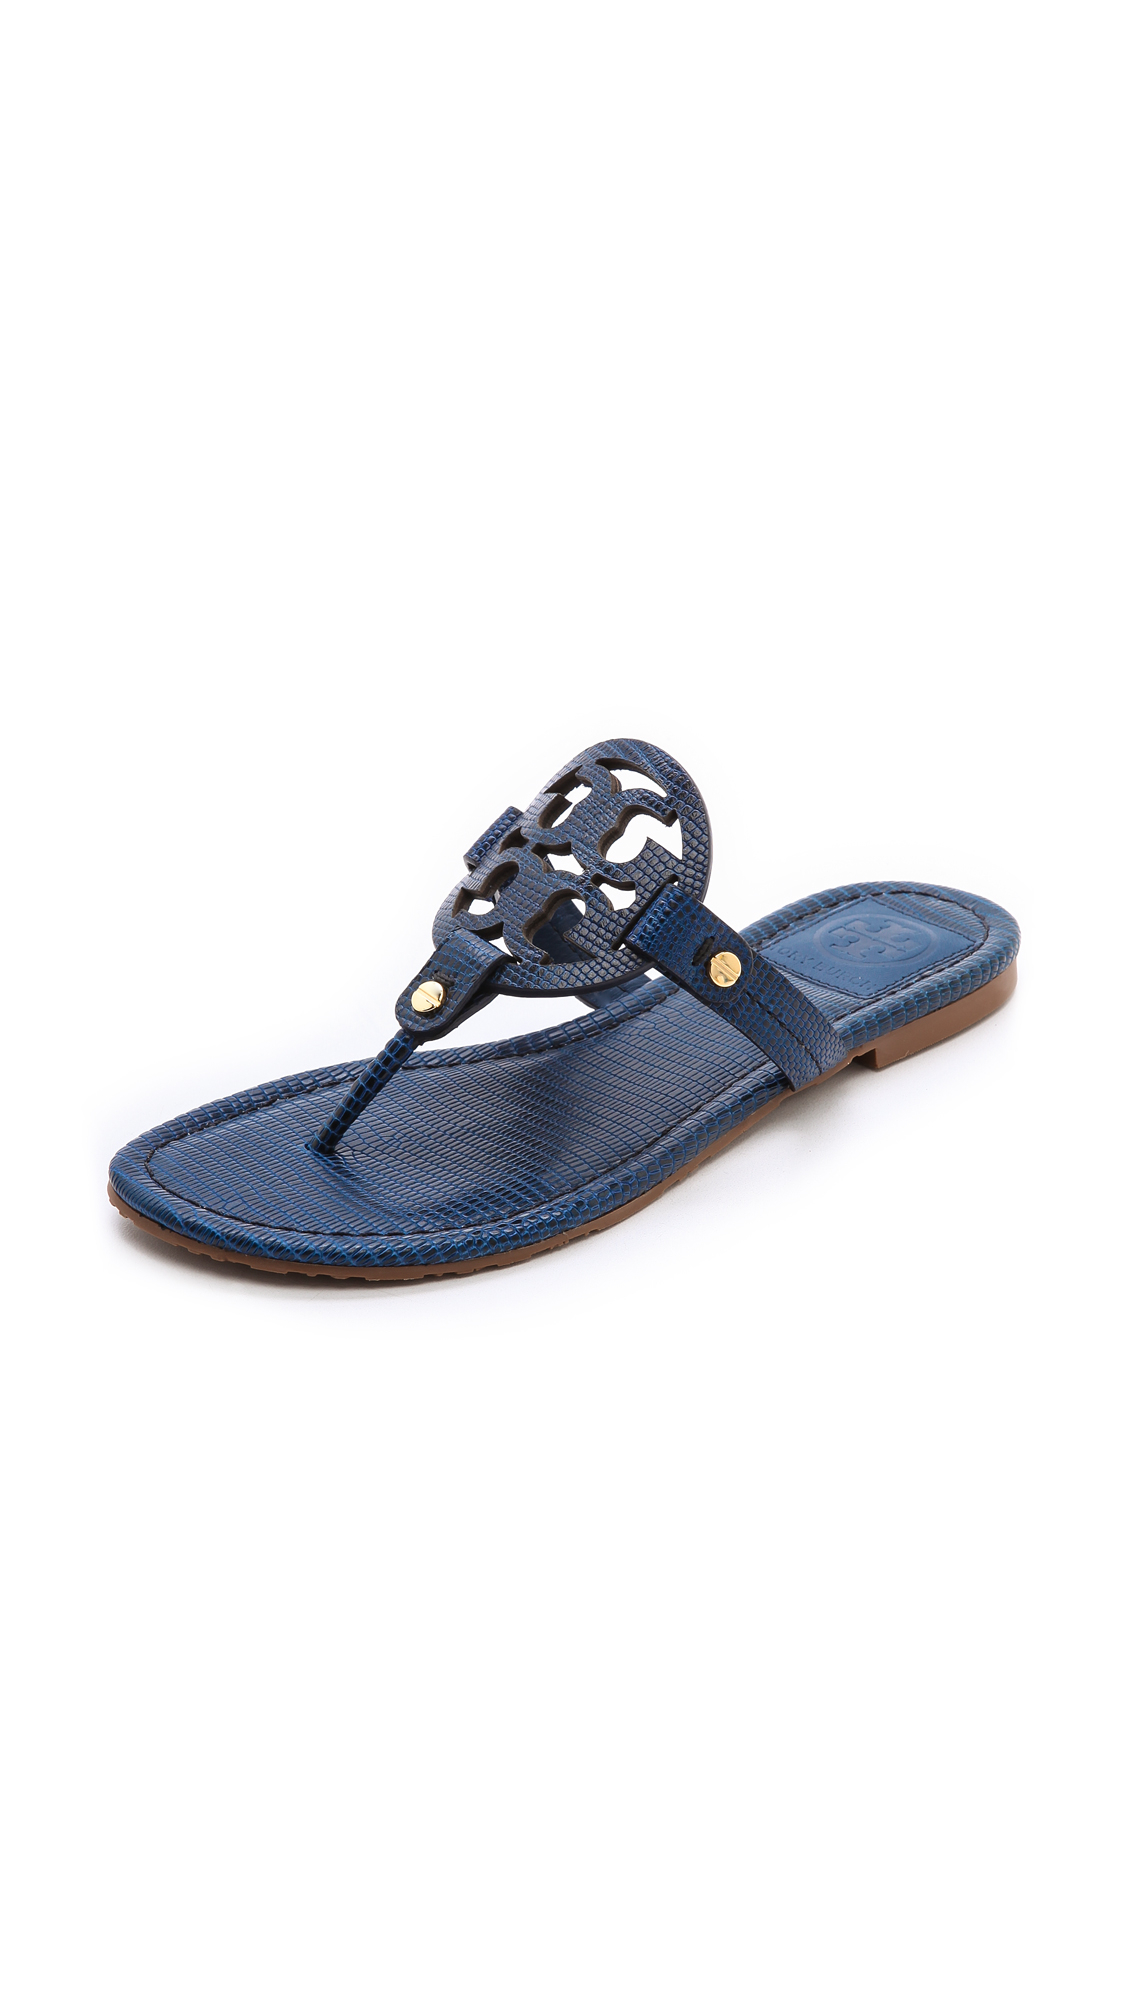 e45d75dfcfa Lyst - Tory Burch Miller Tejus Print Sandals Newport Navy in Blue